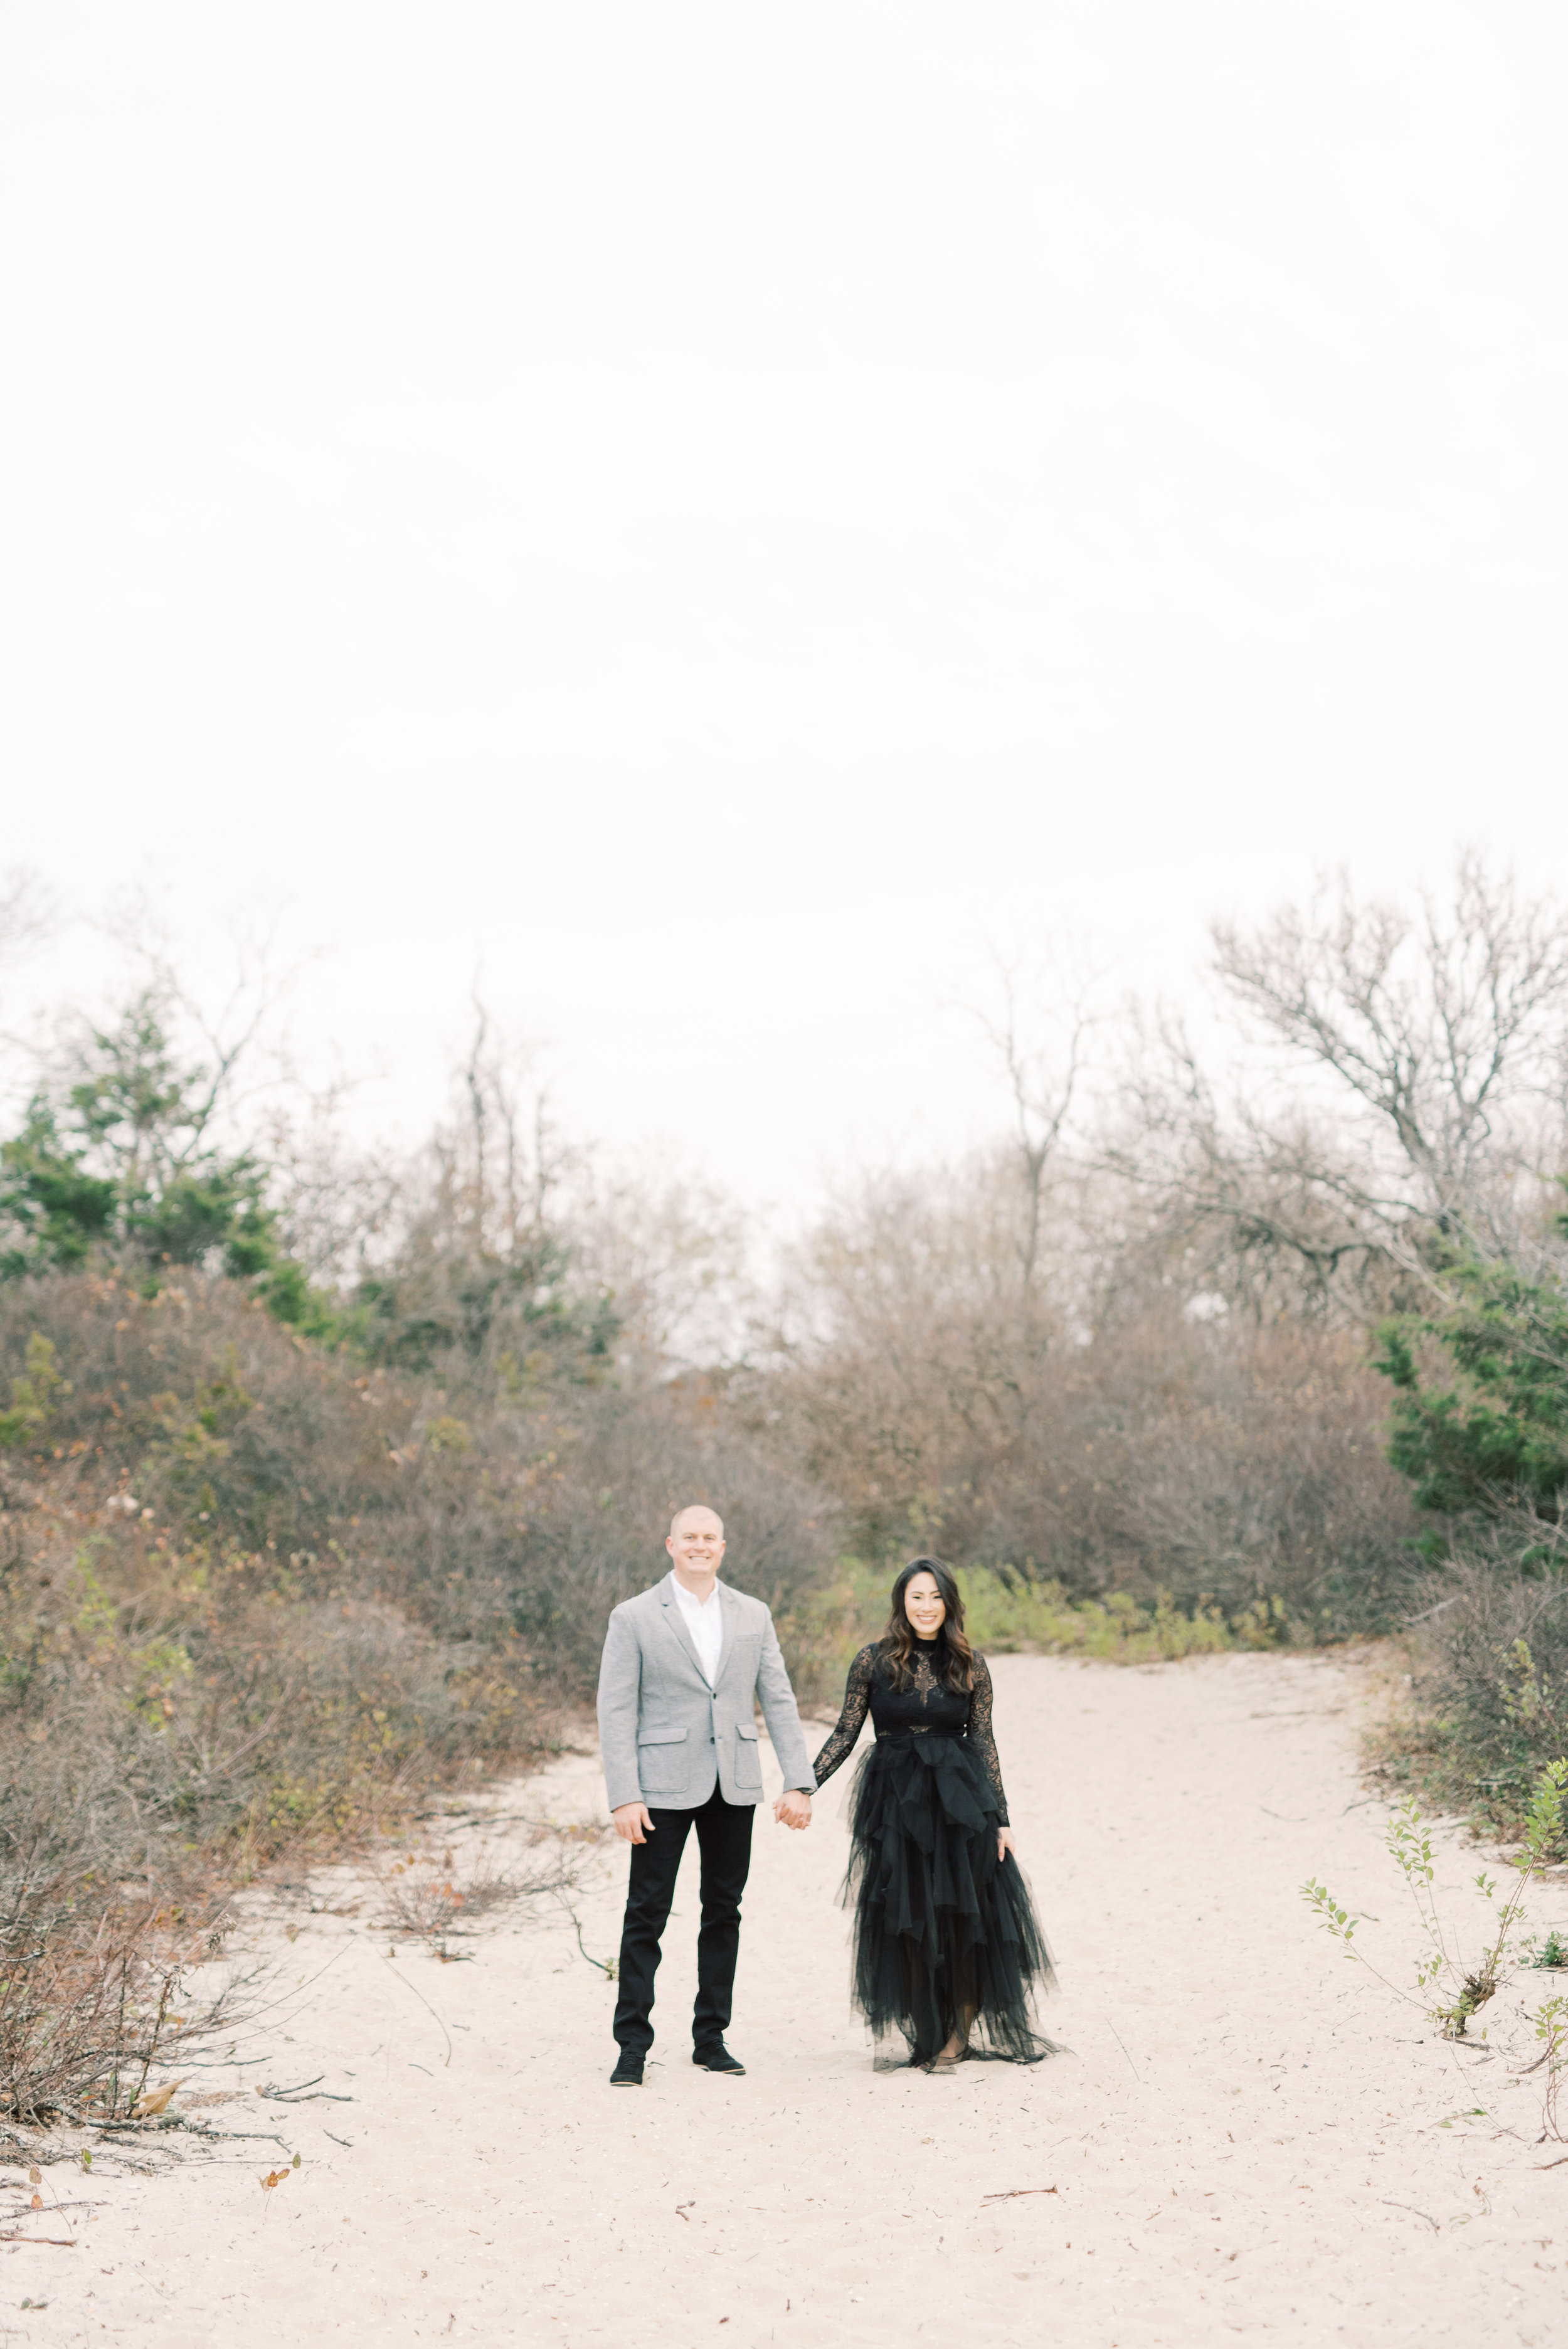 haley-richter-photography-cape-may-engagement-session-016.jpg